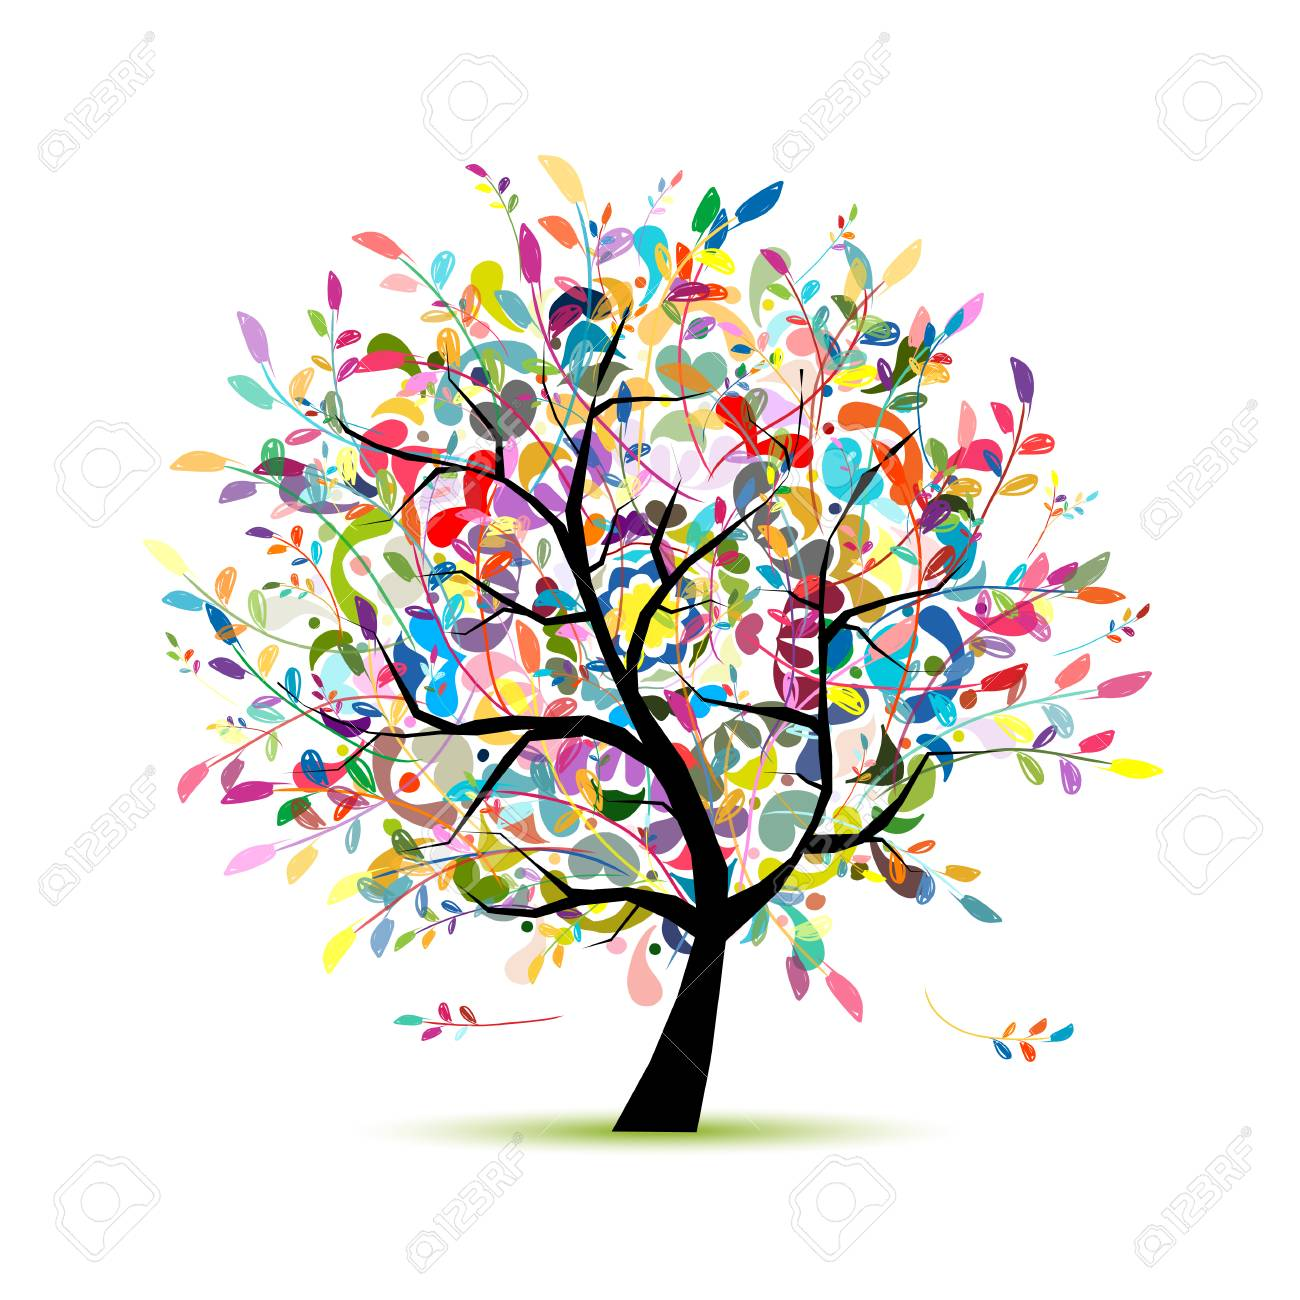 Colorful art tree for your design. Vector illustration - 64881825